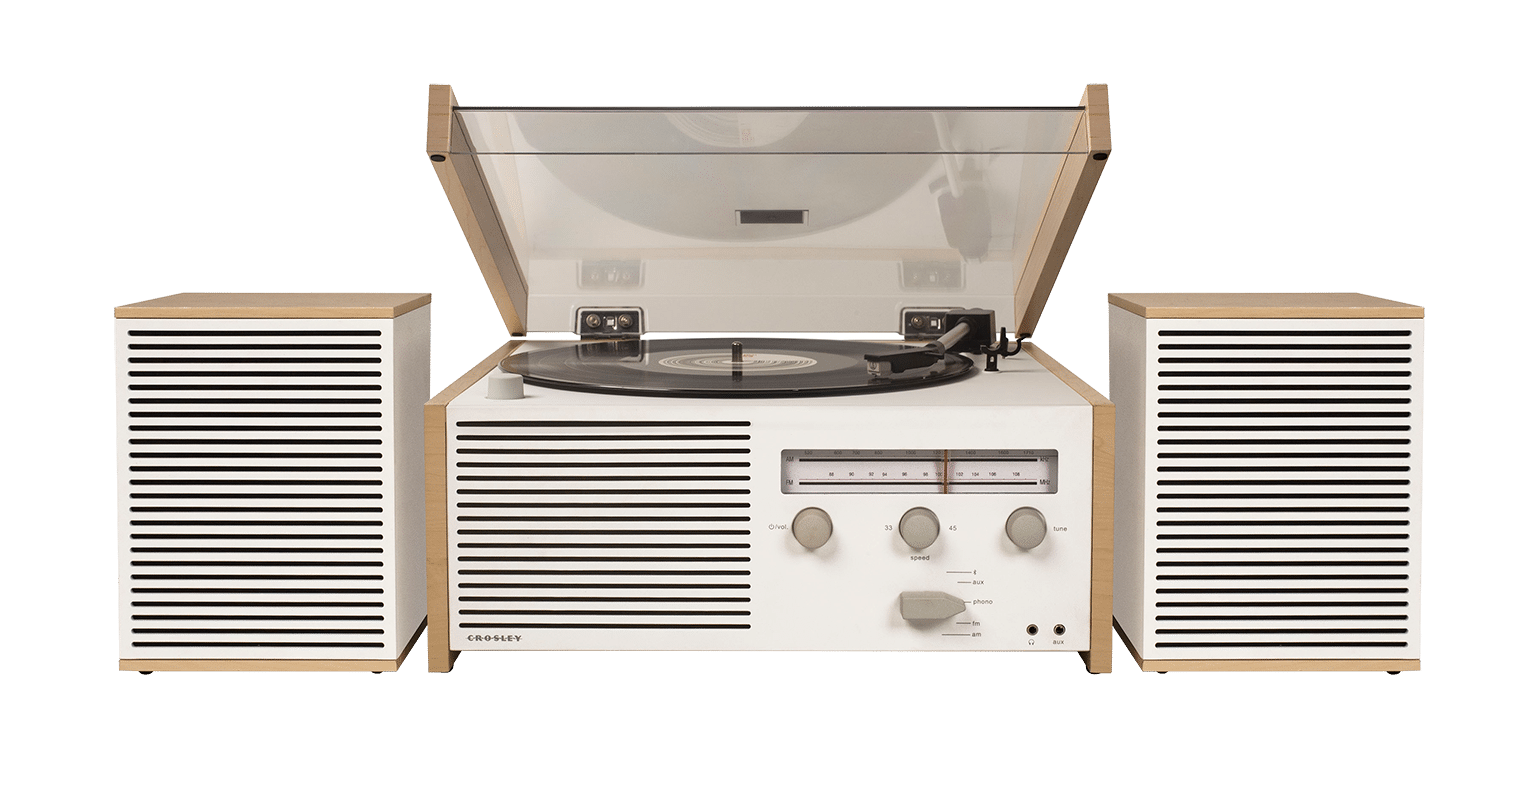 CROSLEY 338992 SWITCH II TURNTABLE